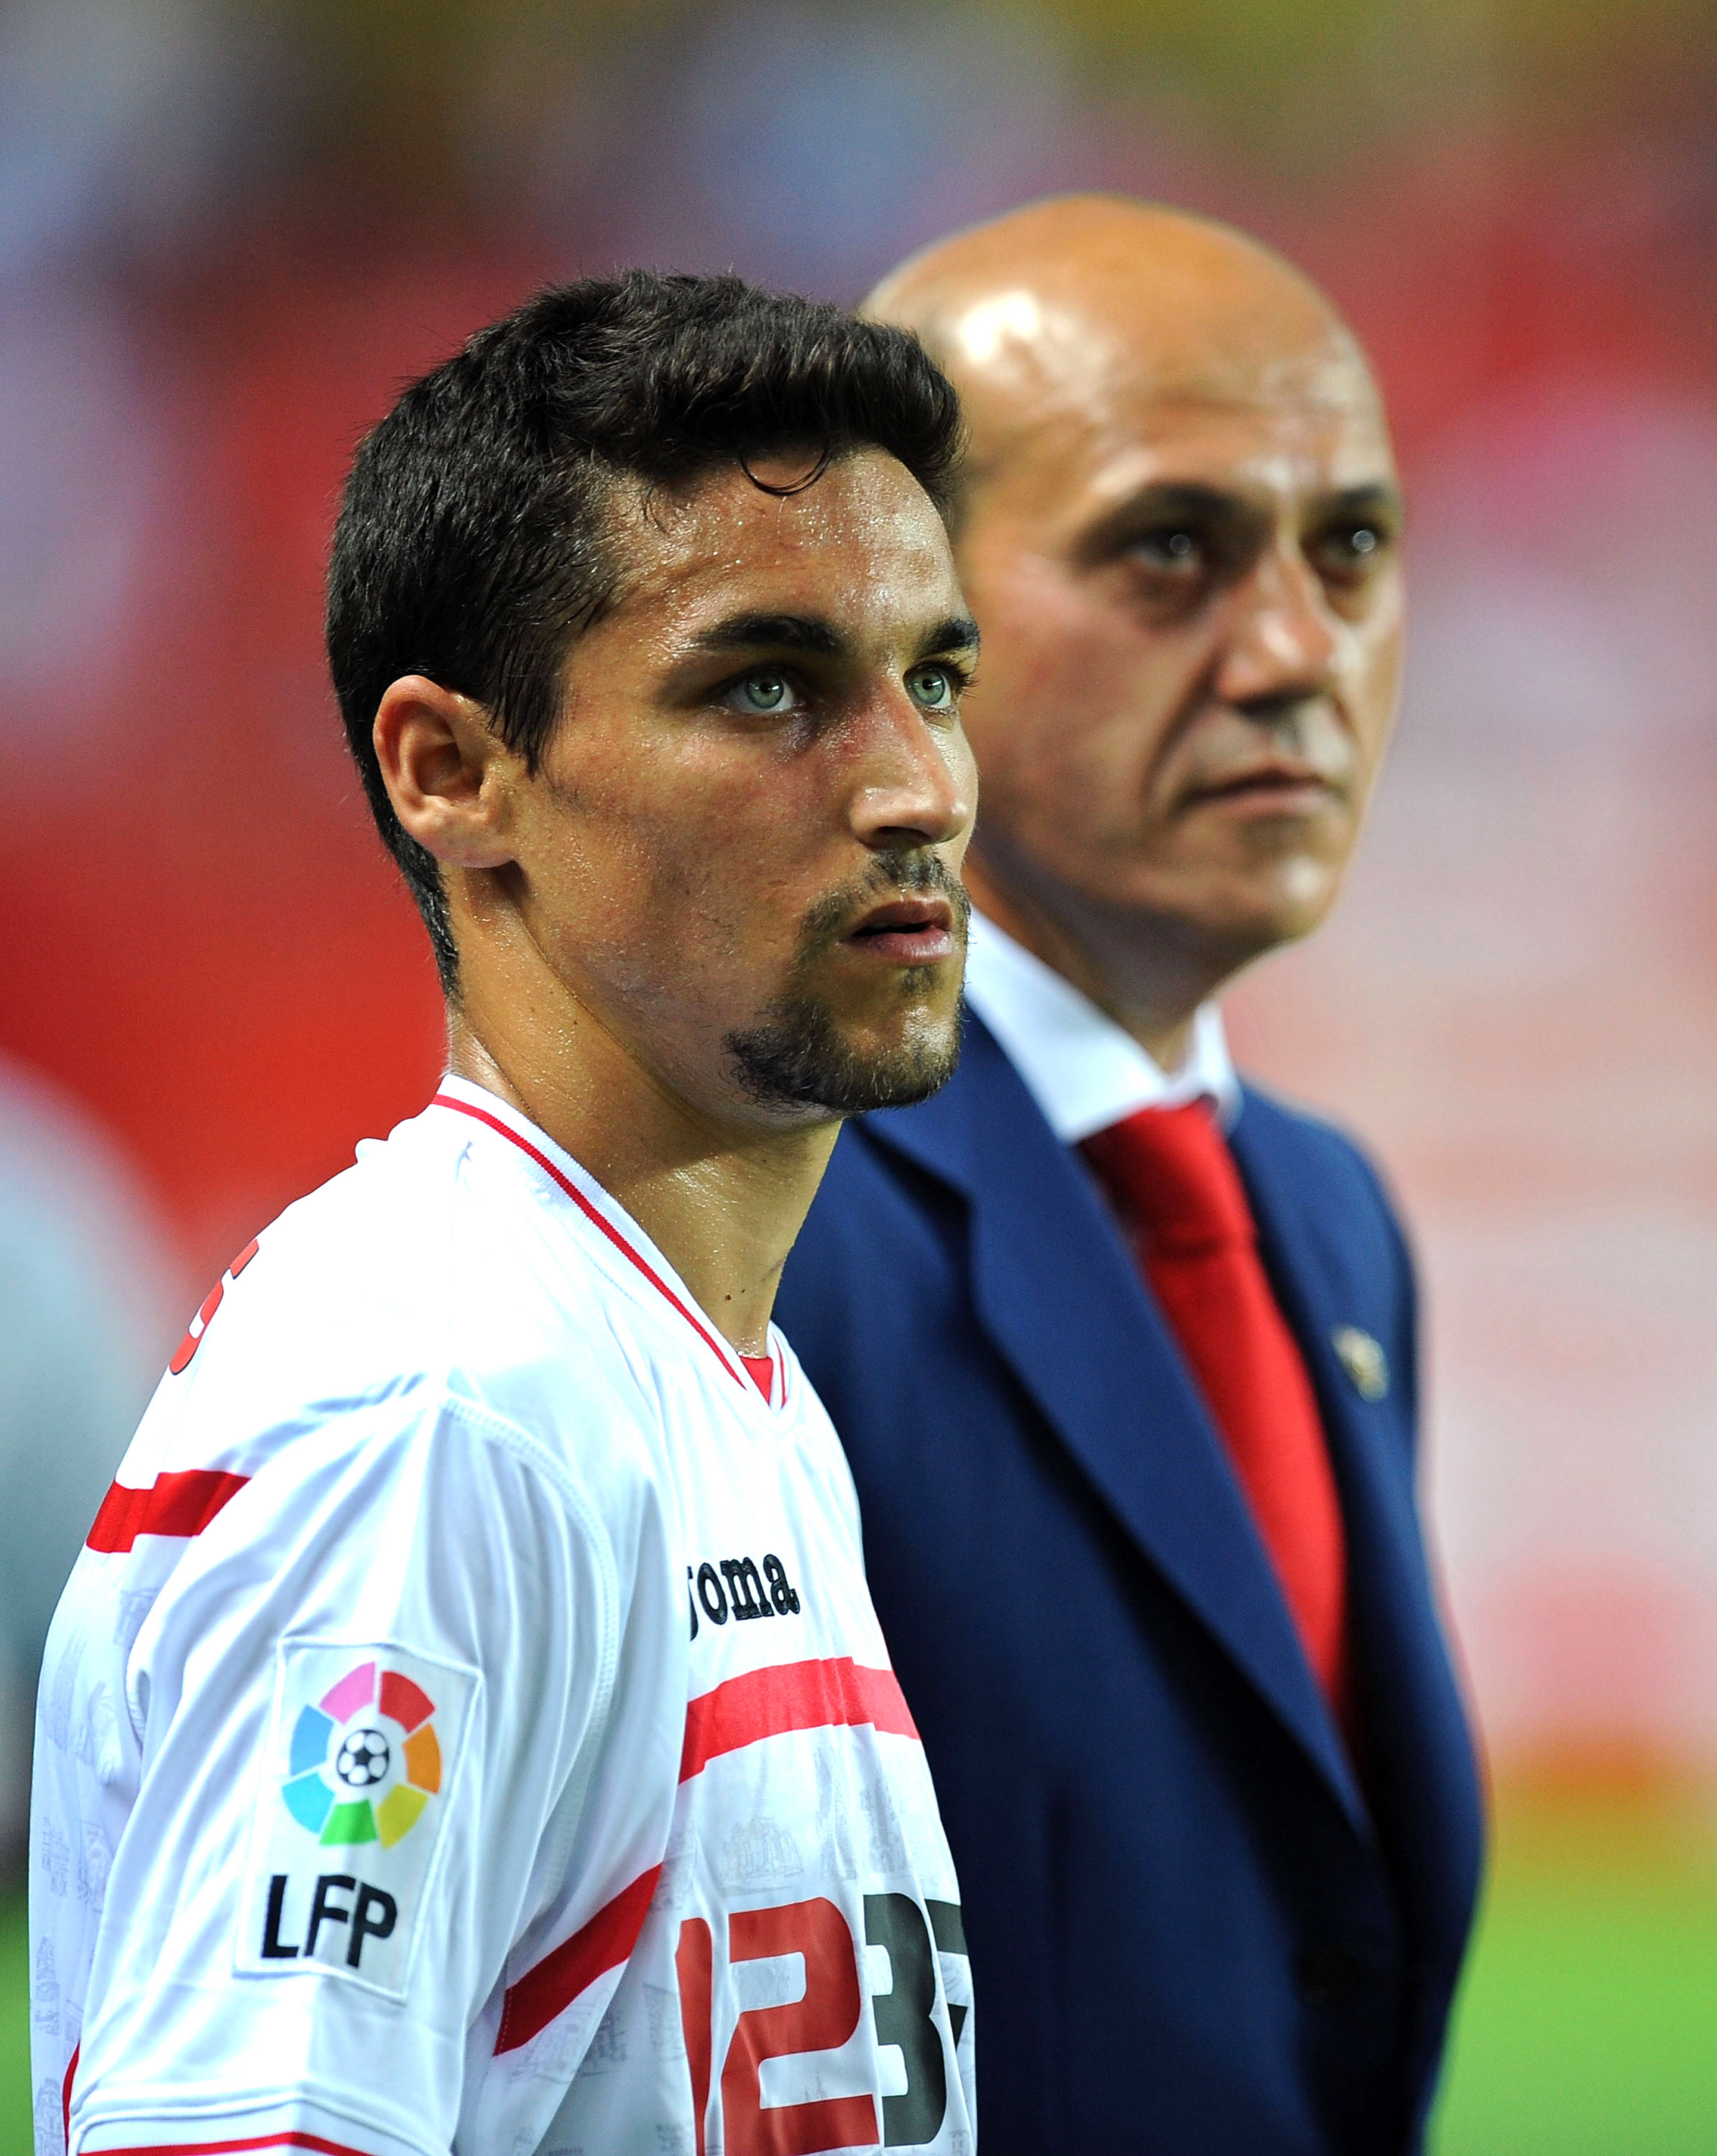 SEVILLE, SPAIN - AUGUST 14:  Jesus Navas (L) of Sevilla stands beside club president Jose Maria del Nido before the Supercopa, first leg, match between Sevilla and Barcelona at the Sanchez Pizjuan stadium  on August 14, 2010 in Seville, Spain.  (Photo by